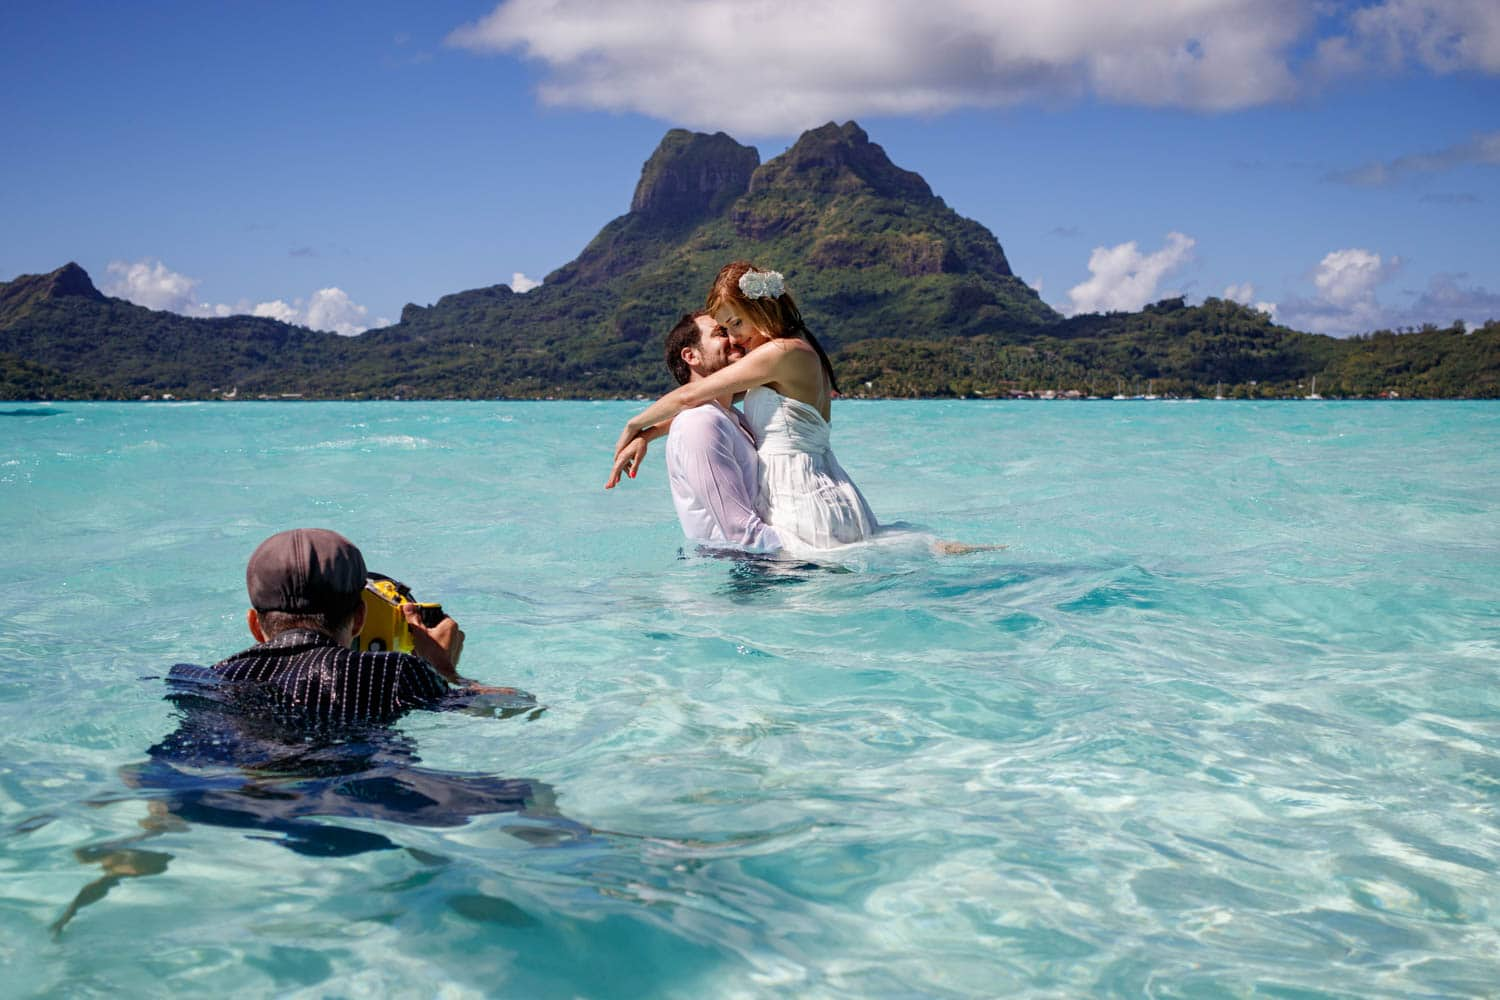 Price for a photoshoot in Bora Bora : photographer cost